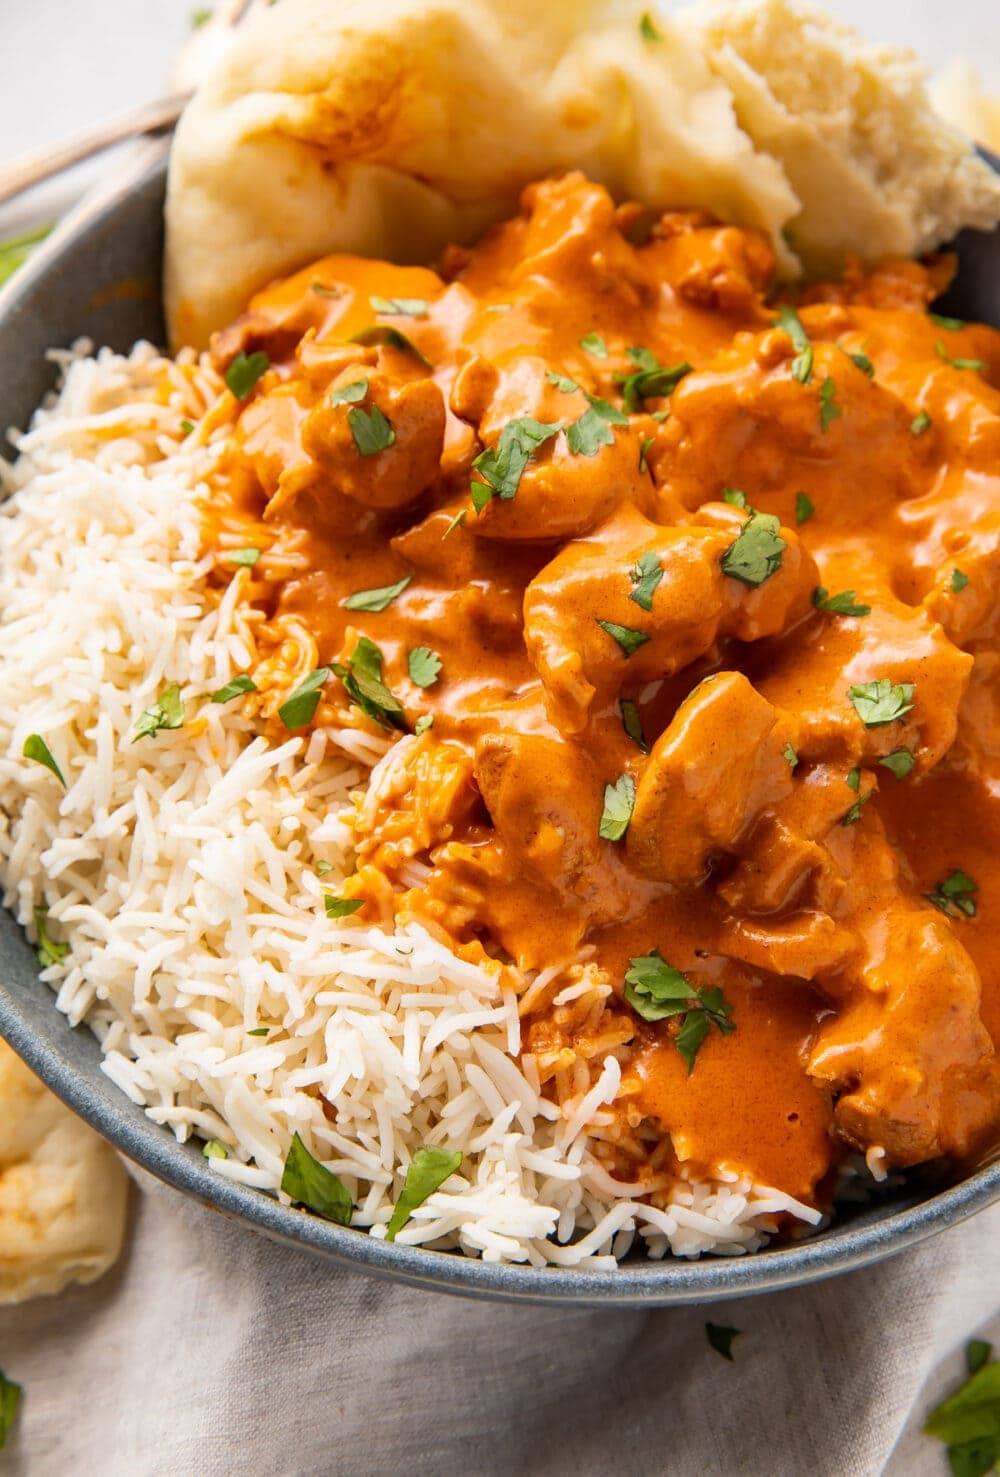 Instant Pot butter chicken, steamed basmati rice, and naan in a large grey bowl